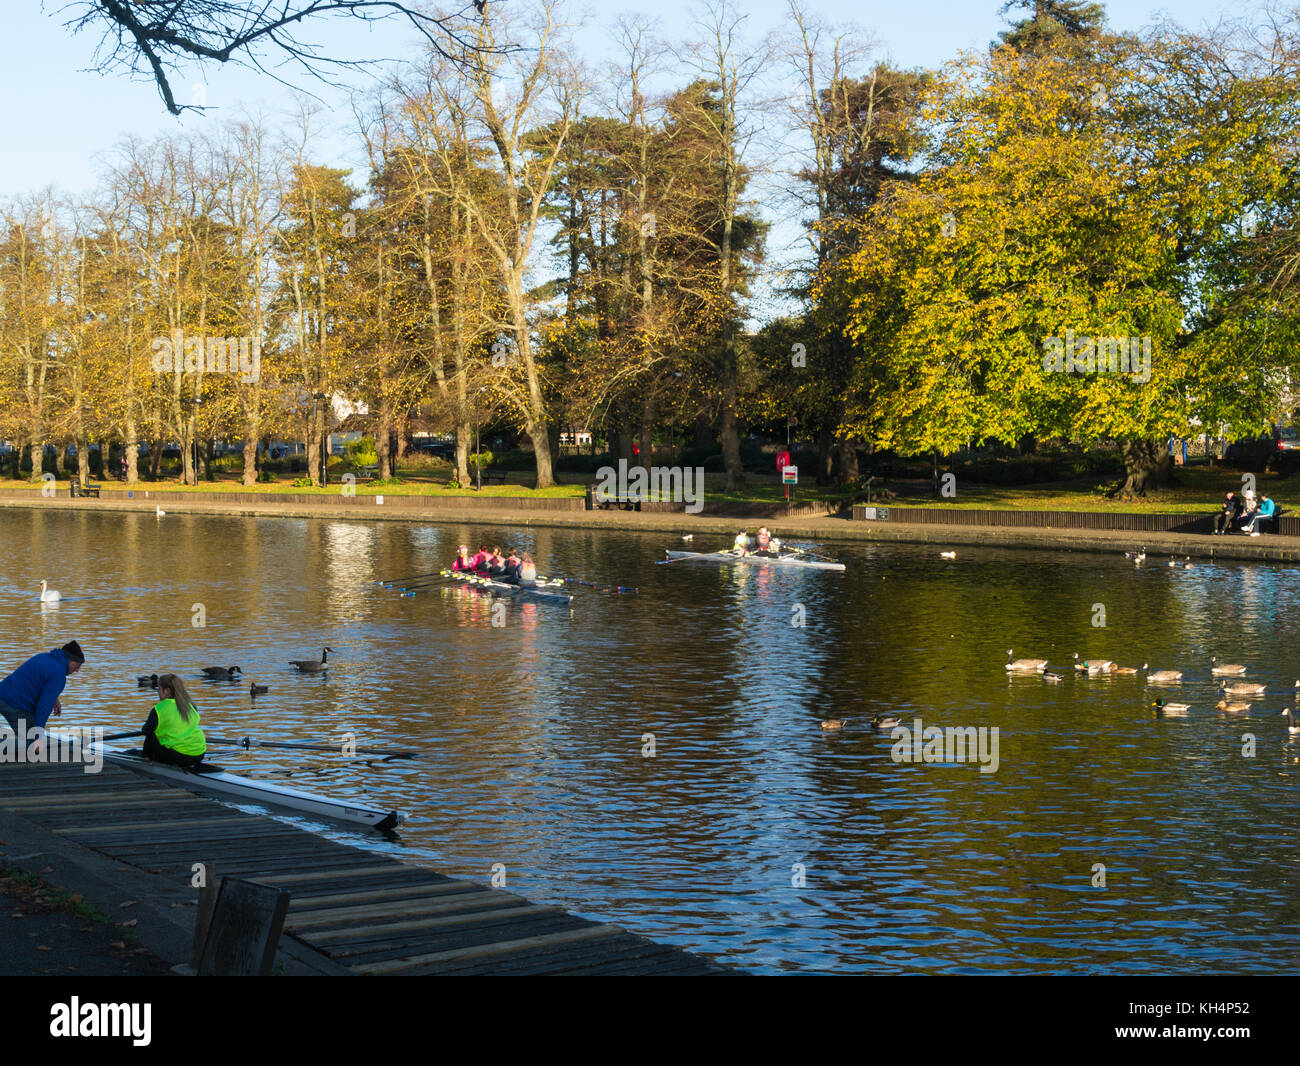 Rowers on River Avon Evesham Worcestershire England UK on a lovely calm November day - Stock Image